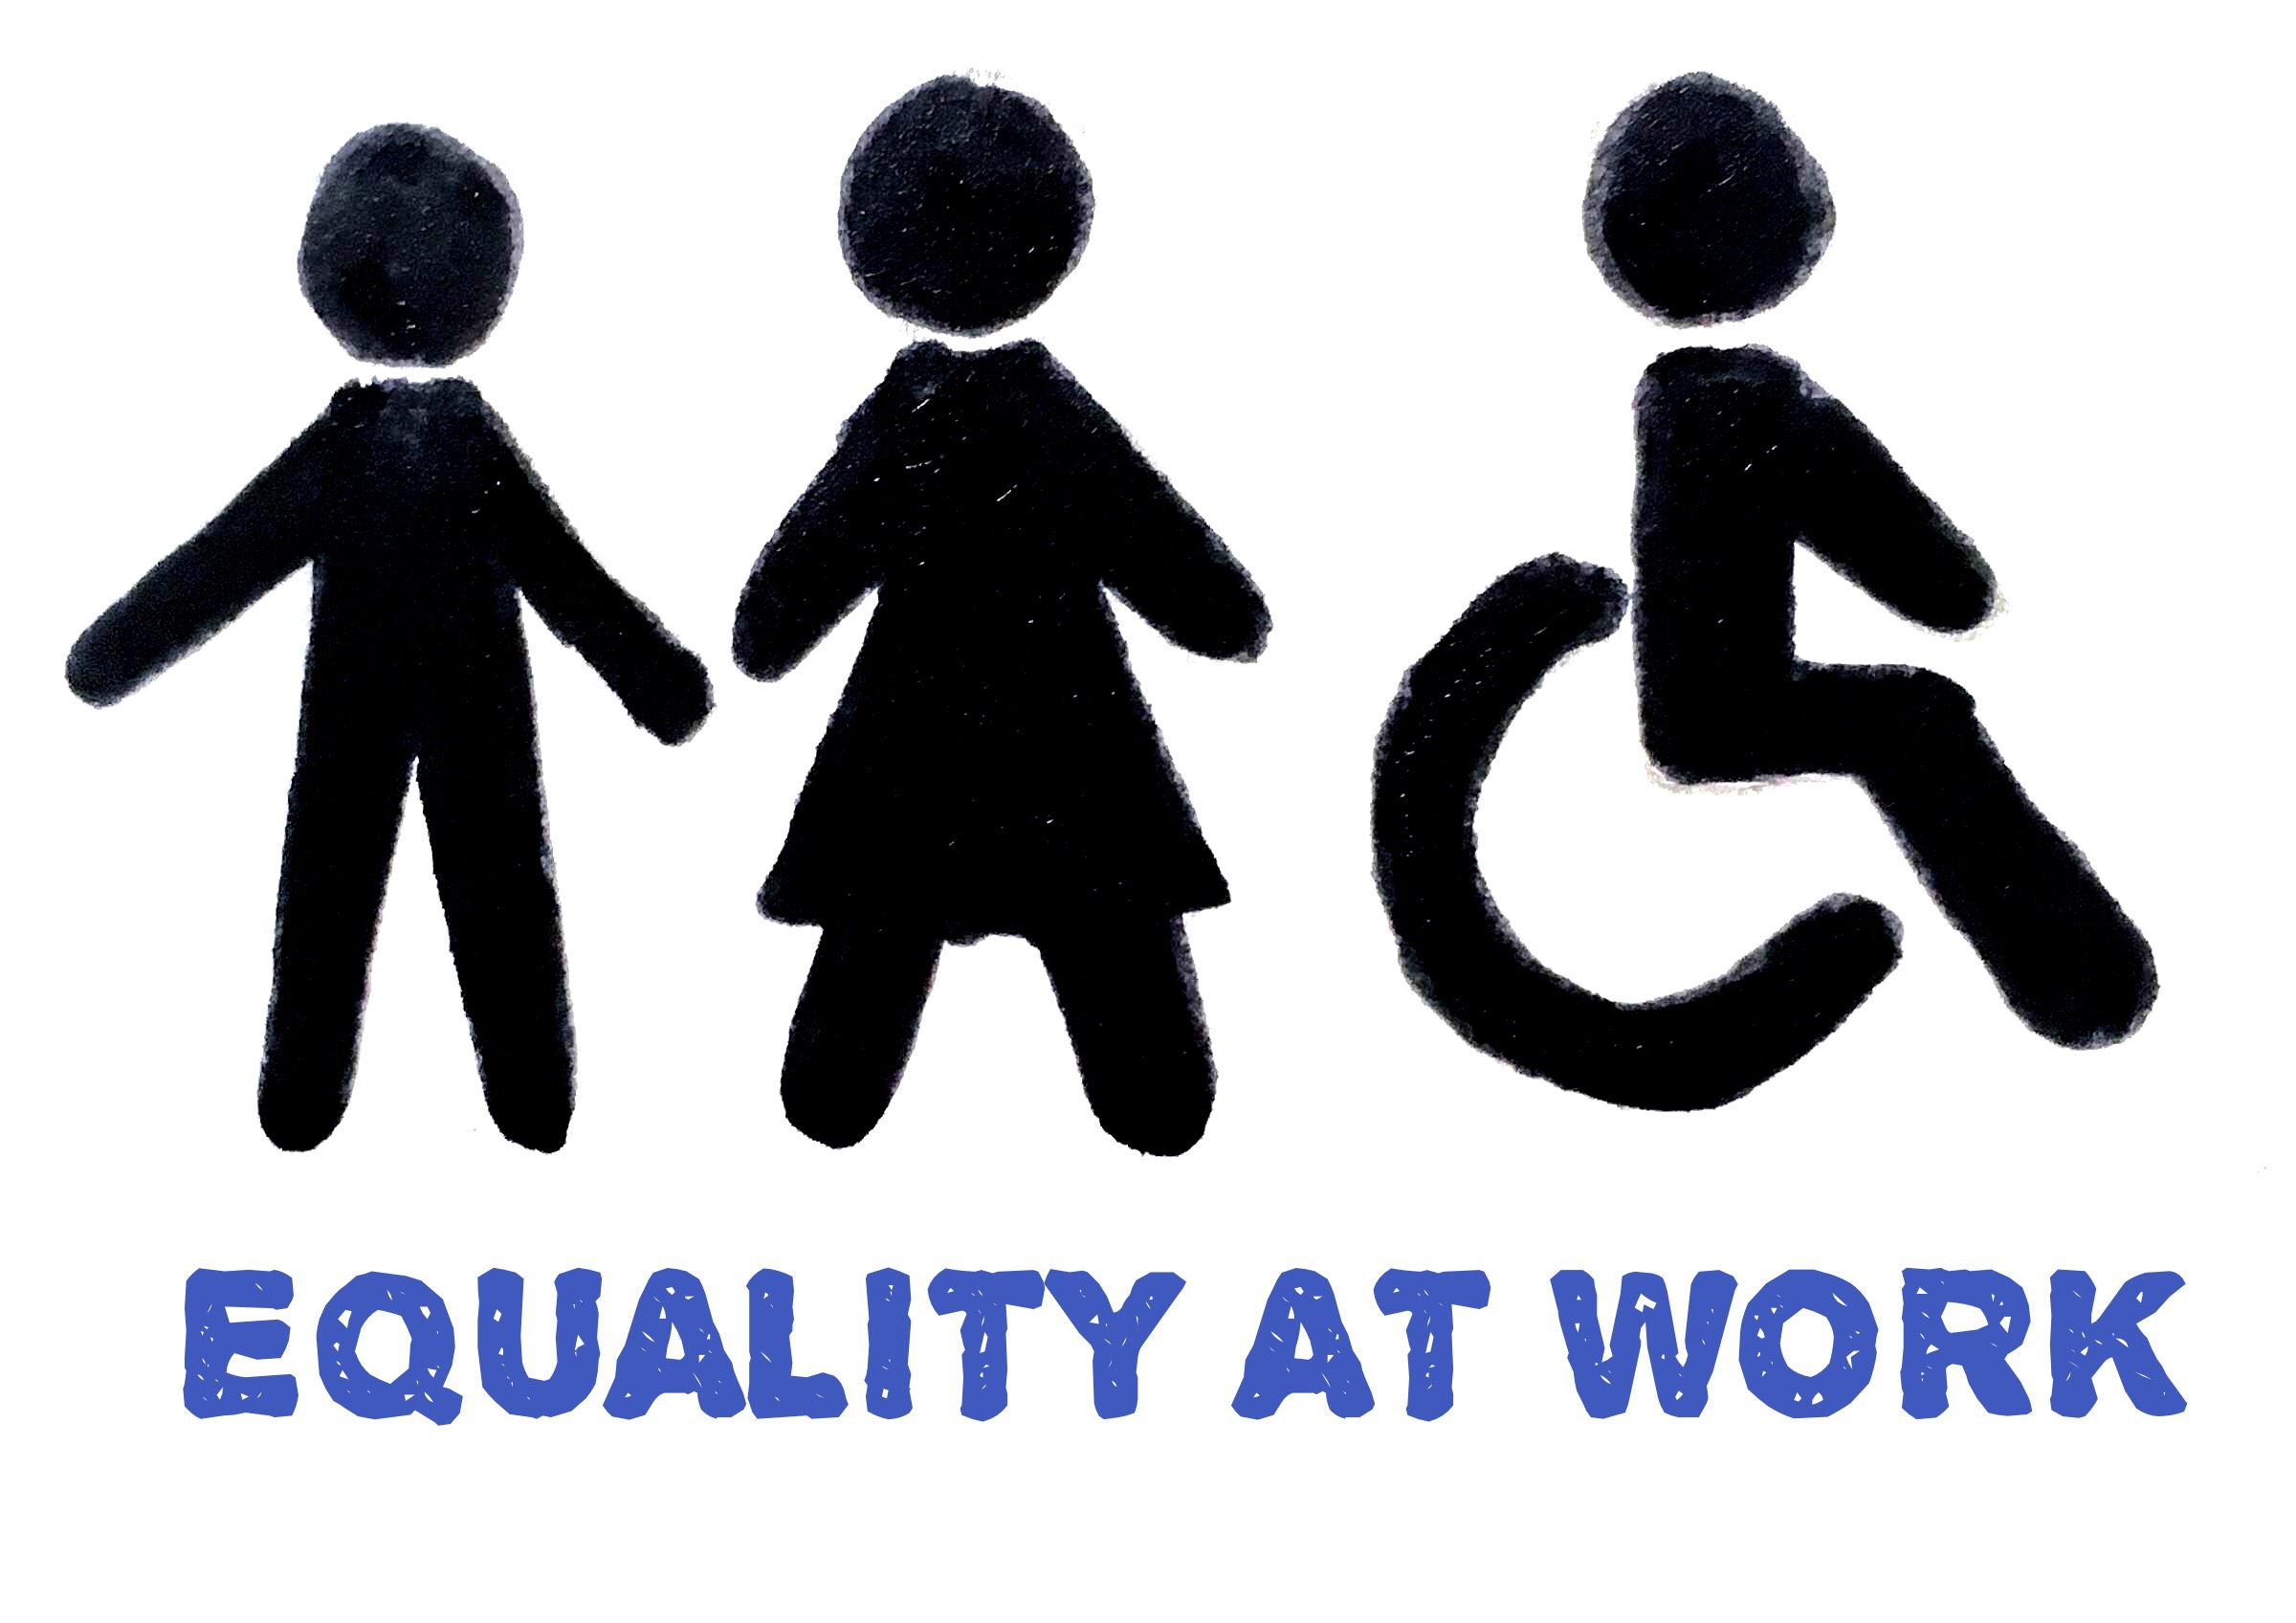 disability discrimination Founded in 1969, the hastings center is the world's first bioethics research institute it is a nonpartisan, nonprofit organization of research scholars from multiple disciplines, including philosophy, law, political science, and education.